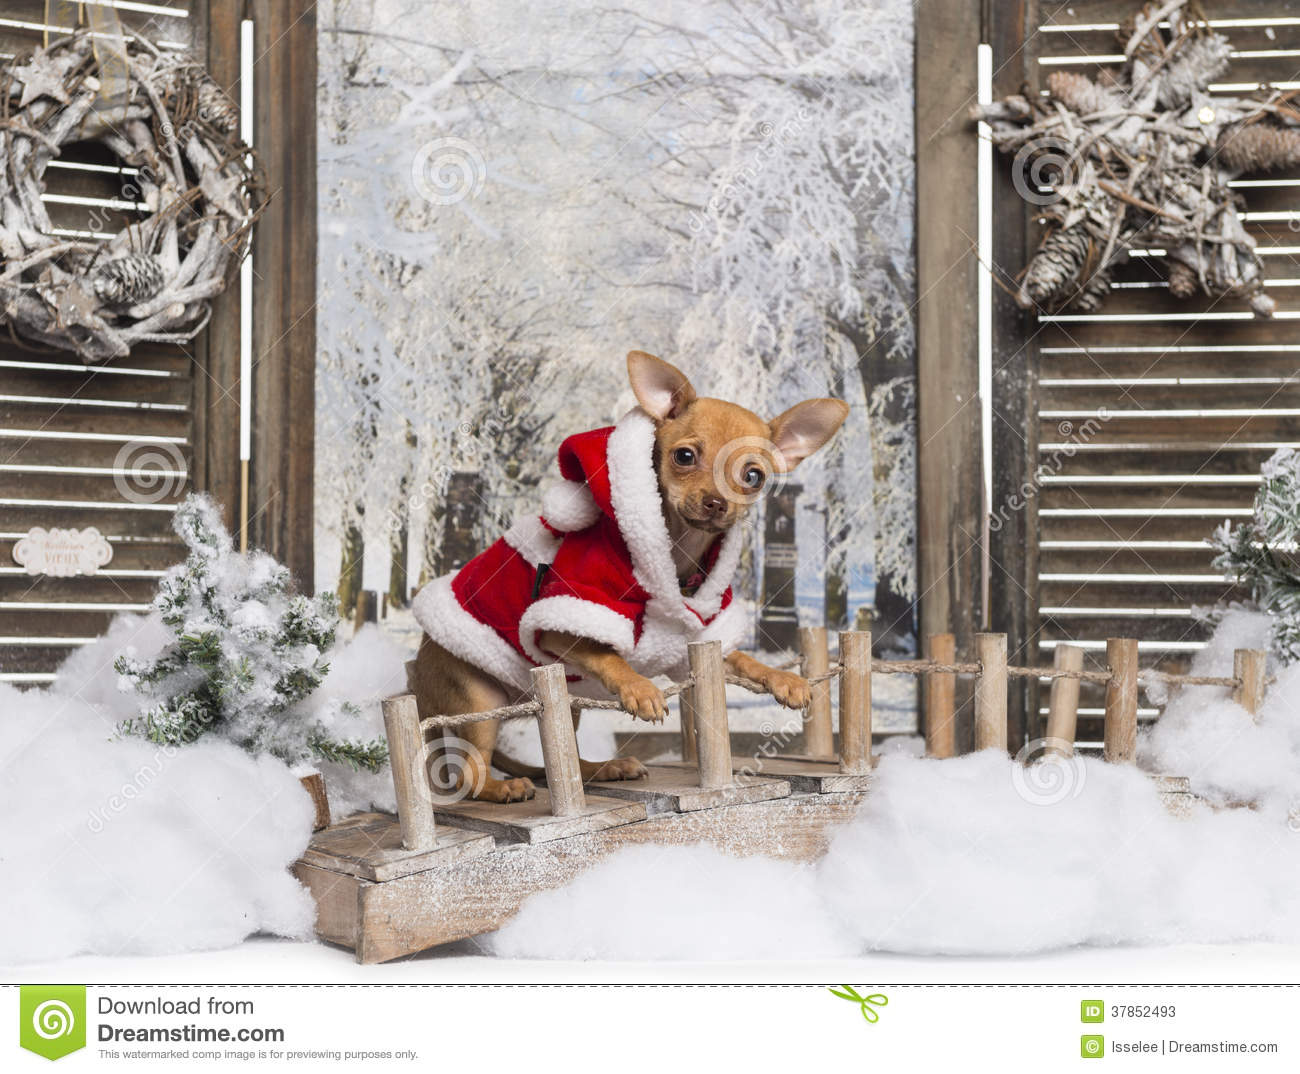 Chihuahua puppy wearing a christmas suit in a winter scenery